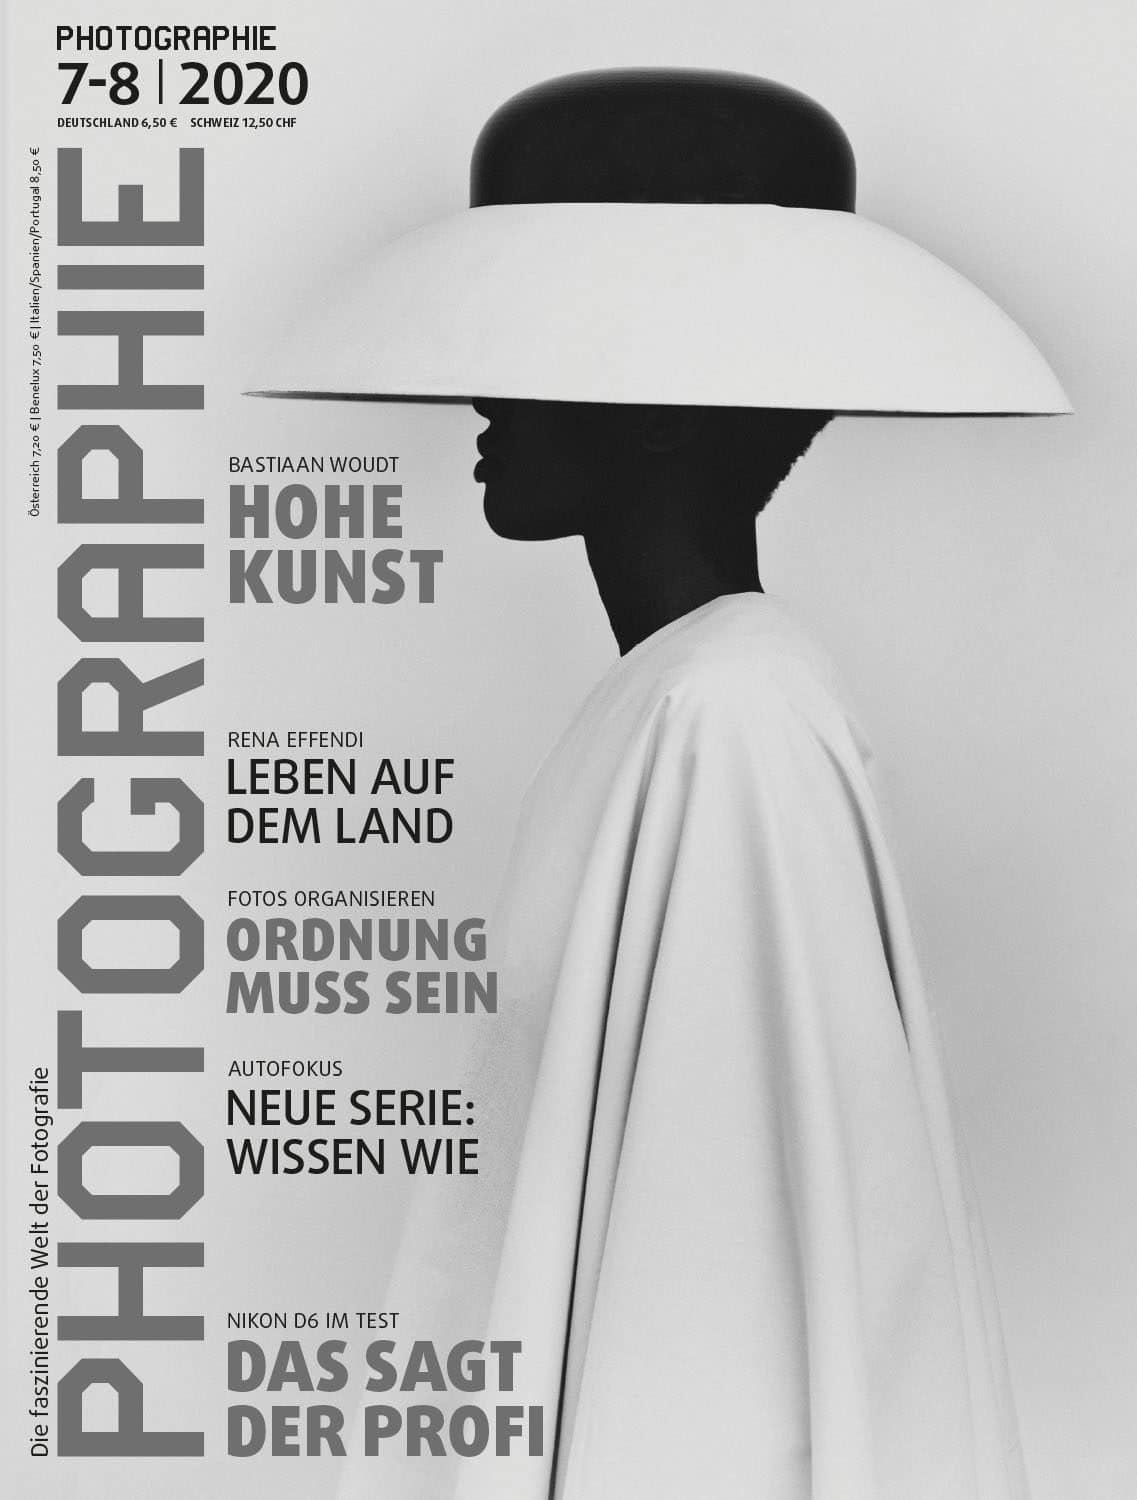 PHOTOGRAPHIE Digitales Magazin 7-8 2020 Cover